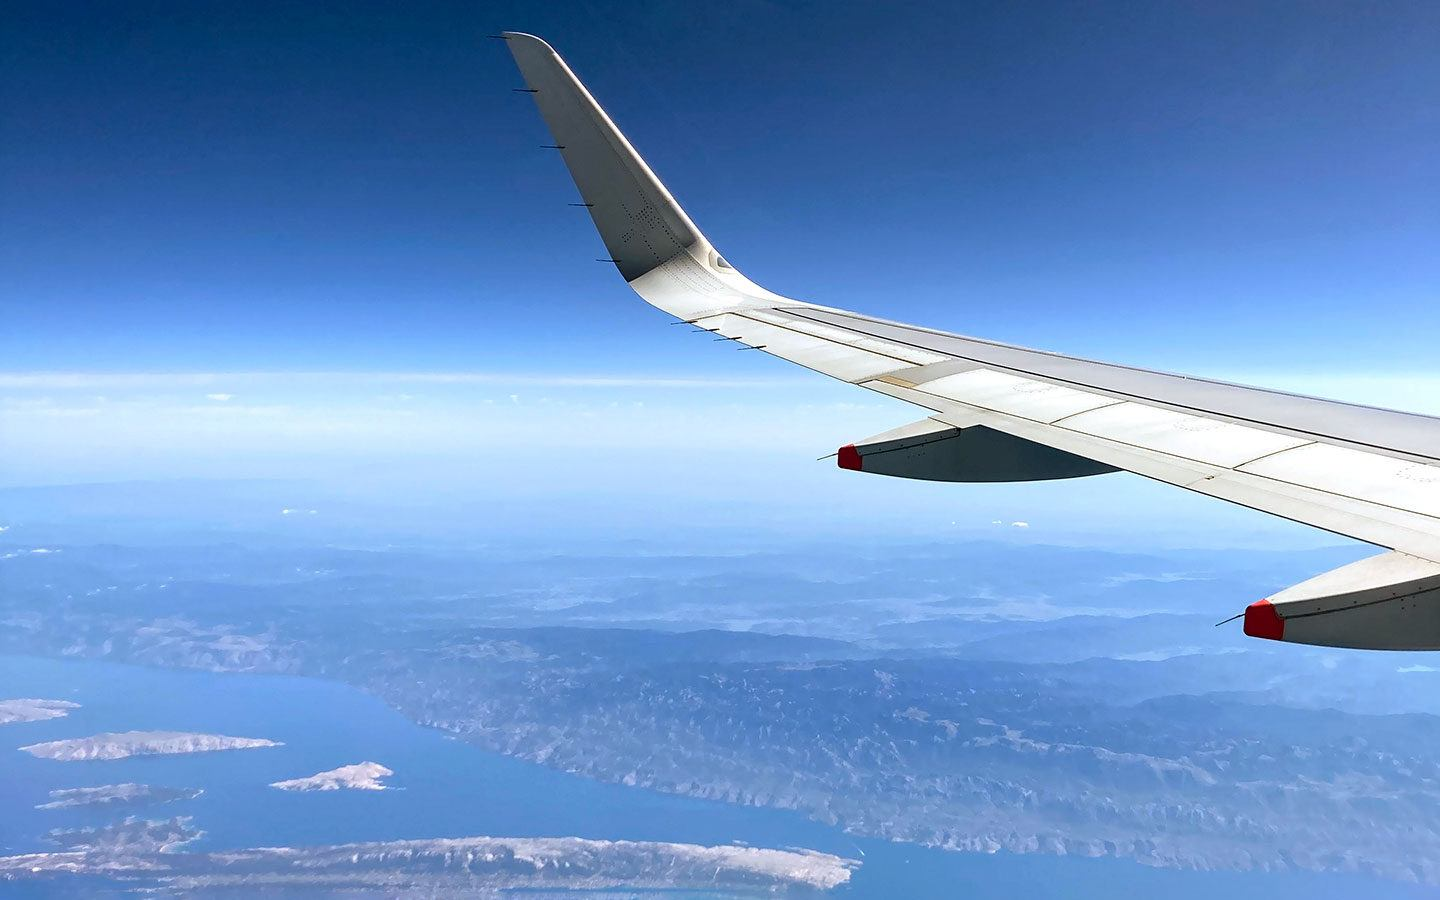 Flying from the UK to Greece during the pandemic